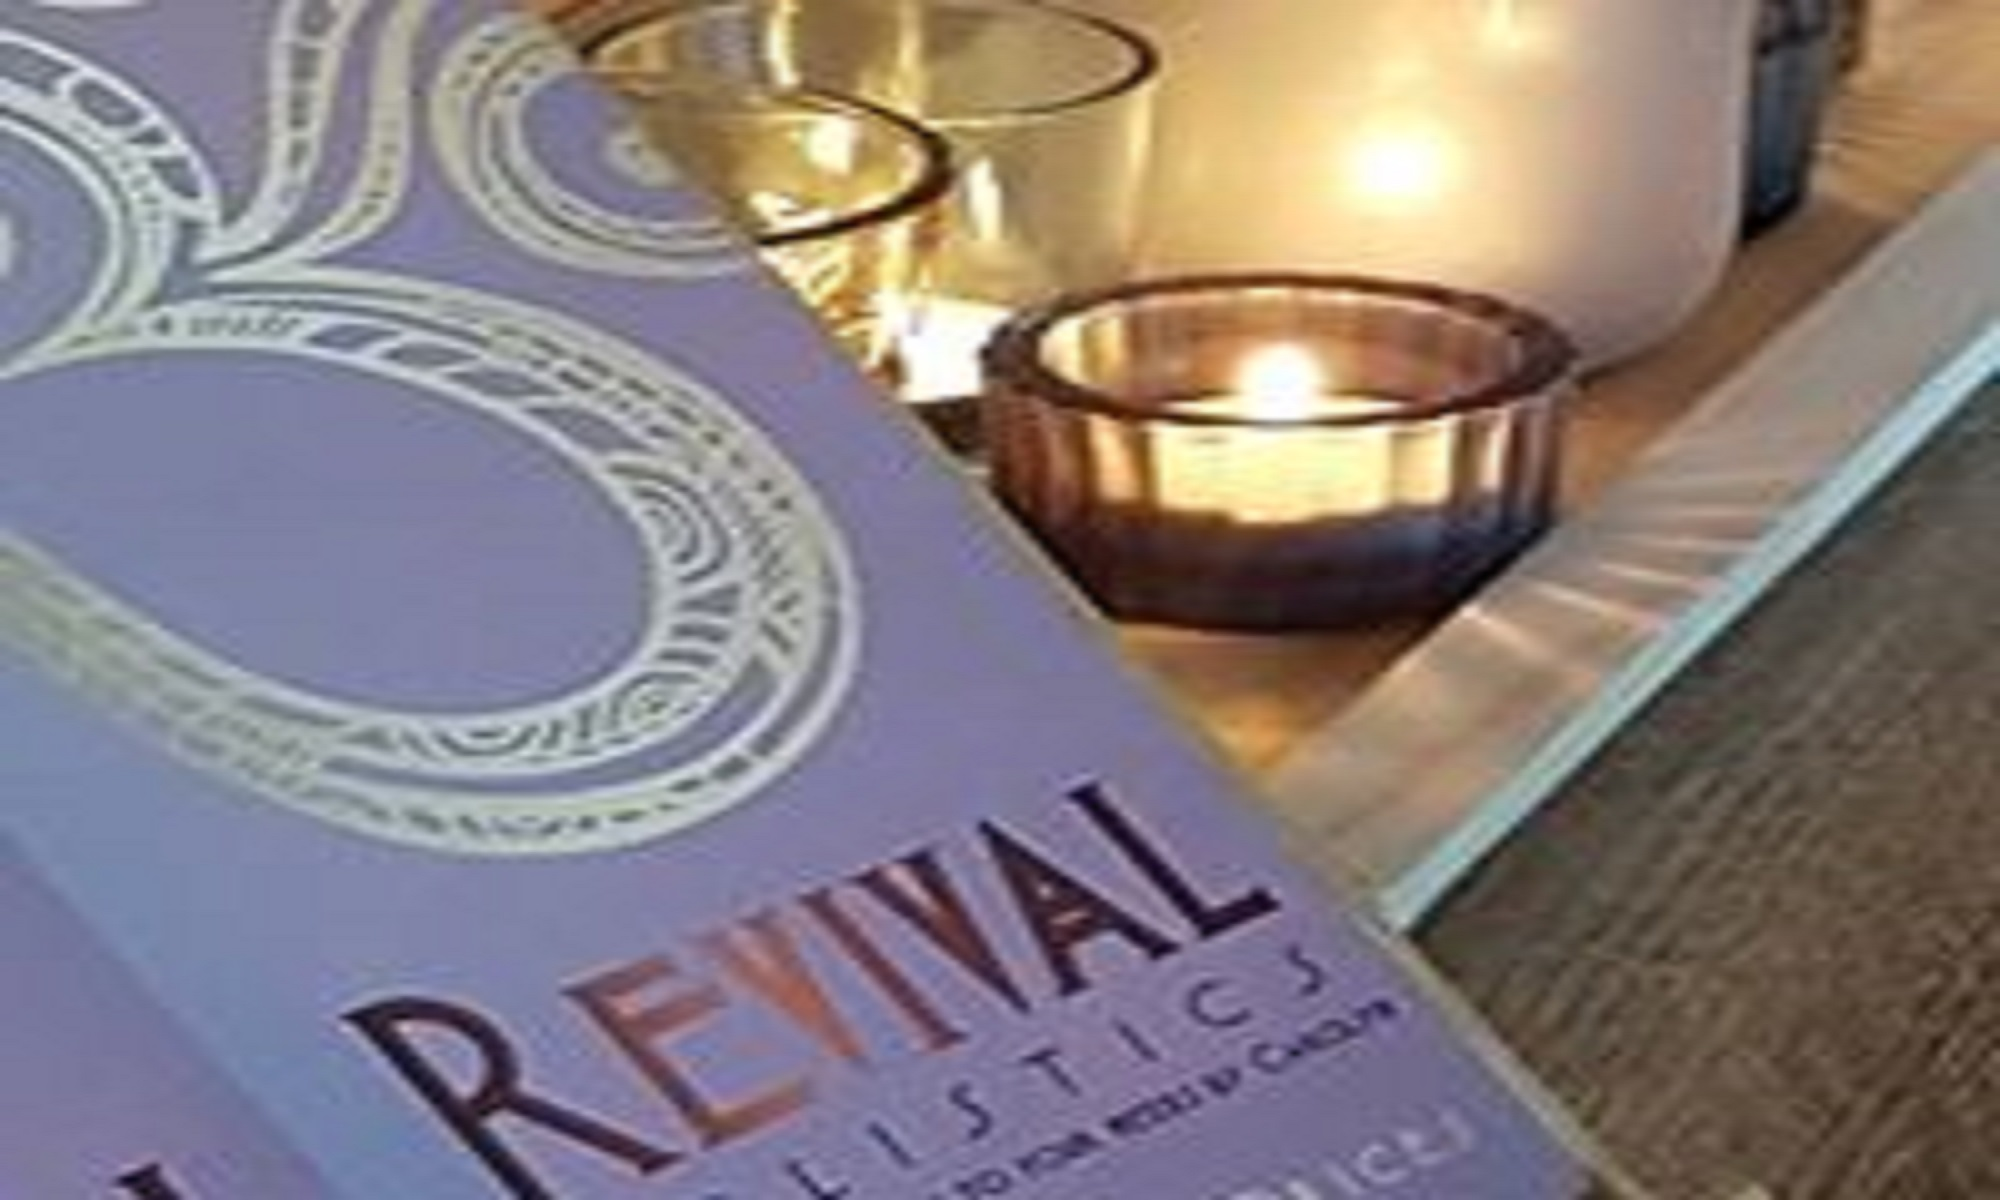 Revival Holistics